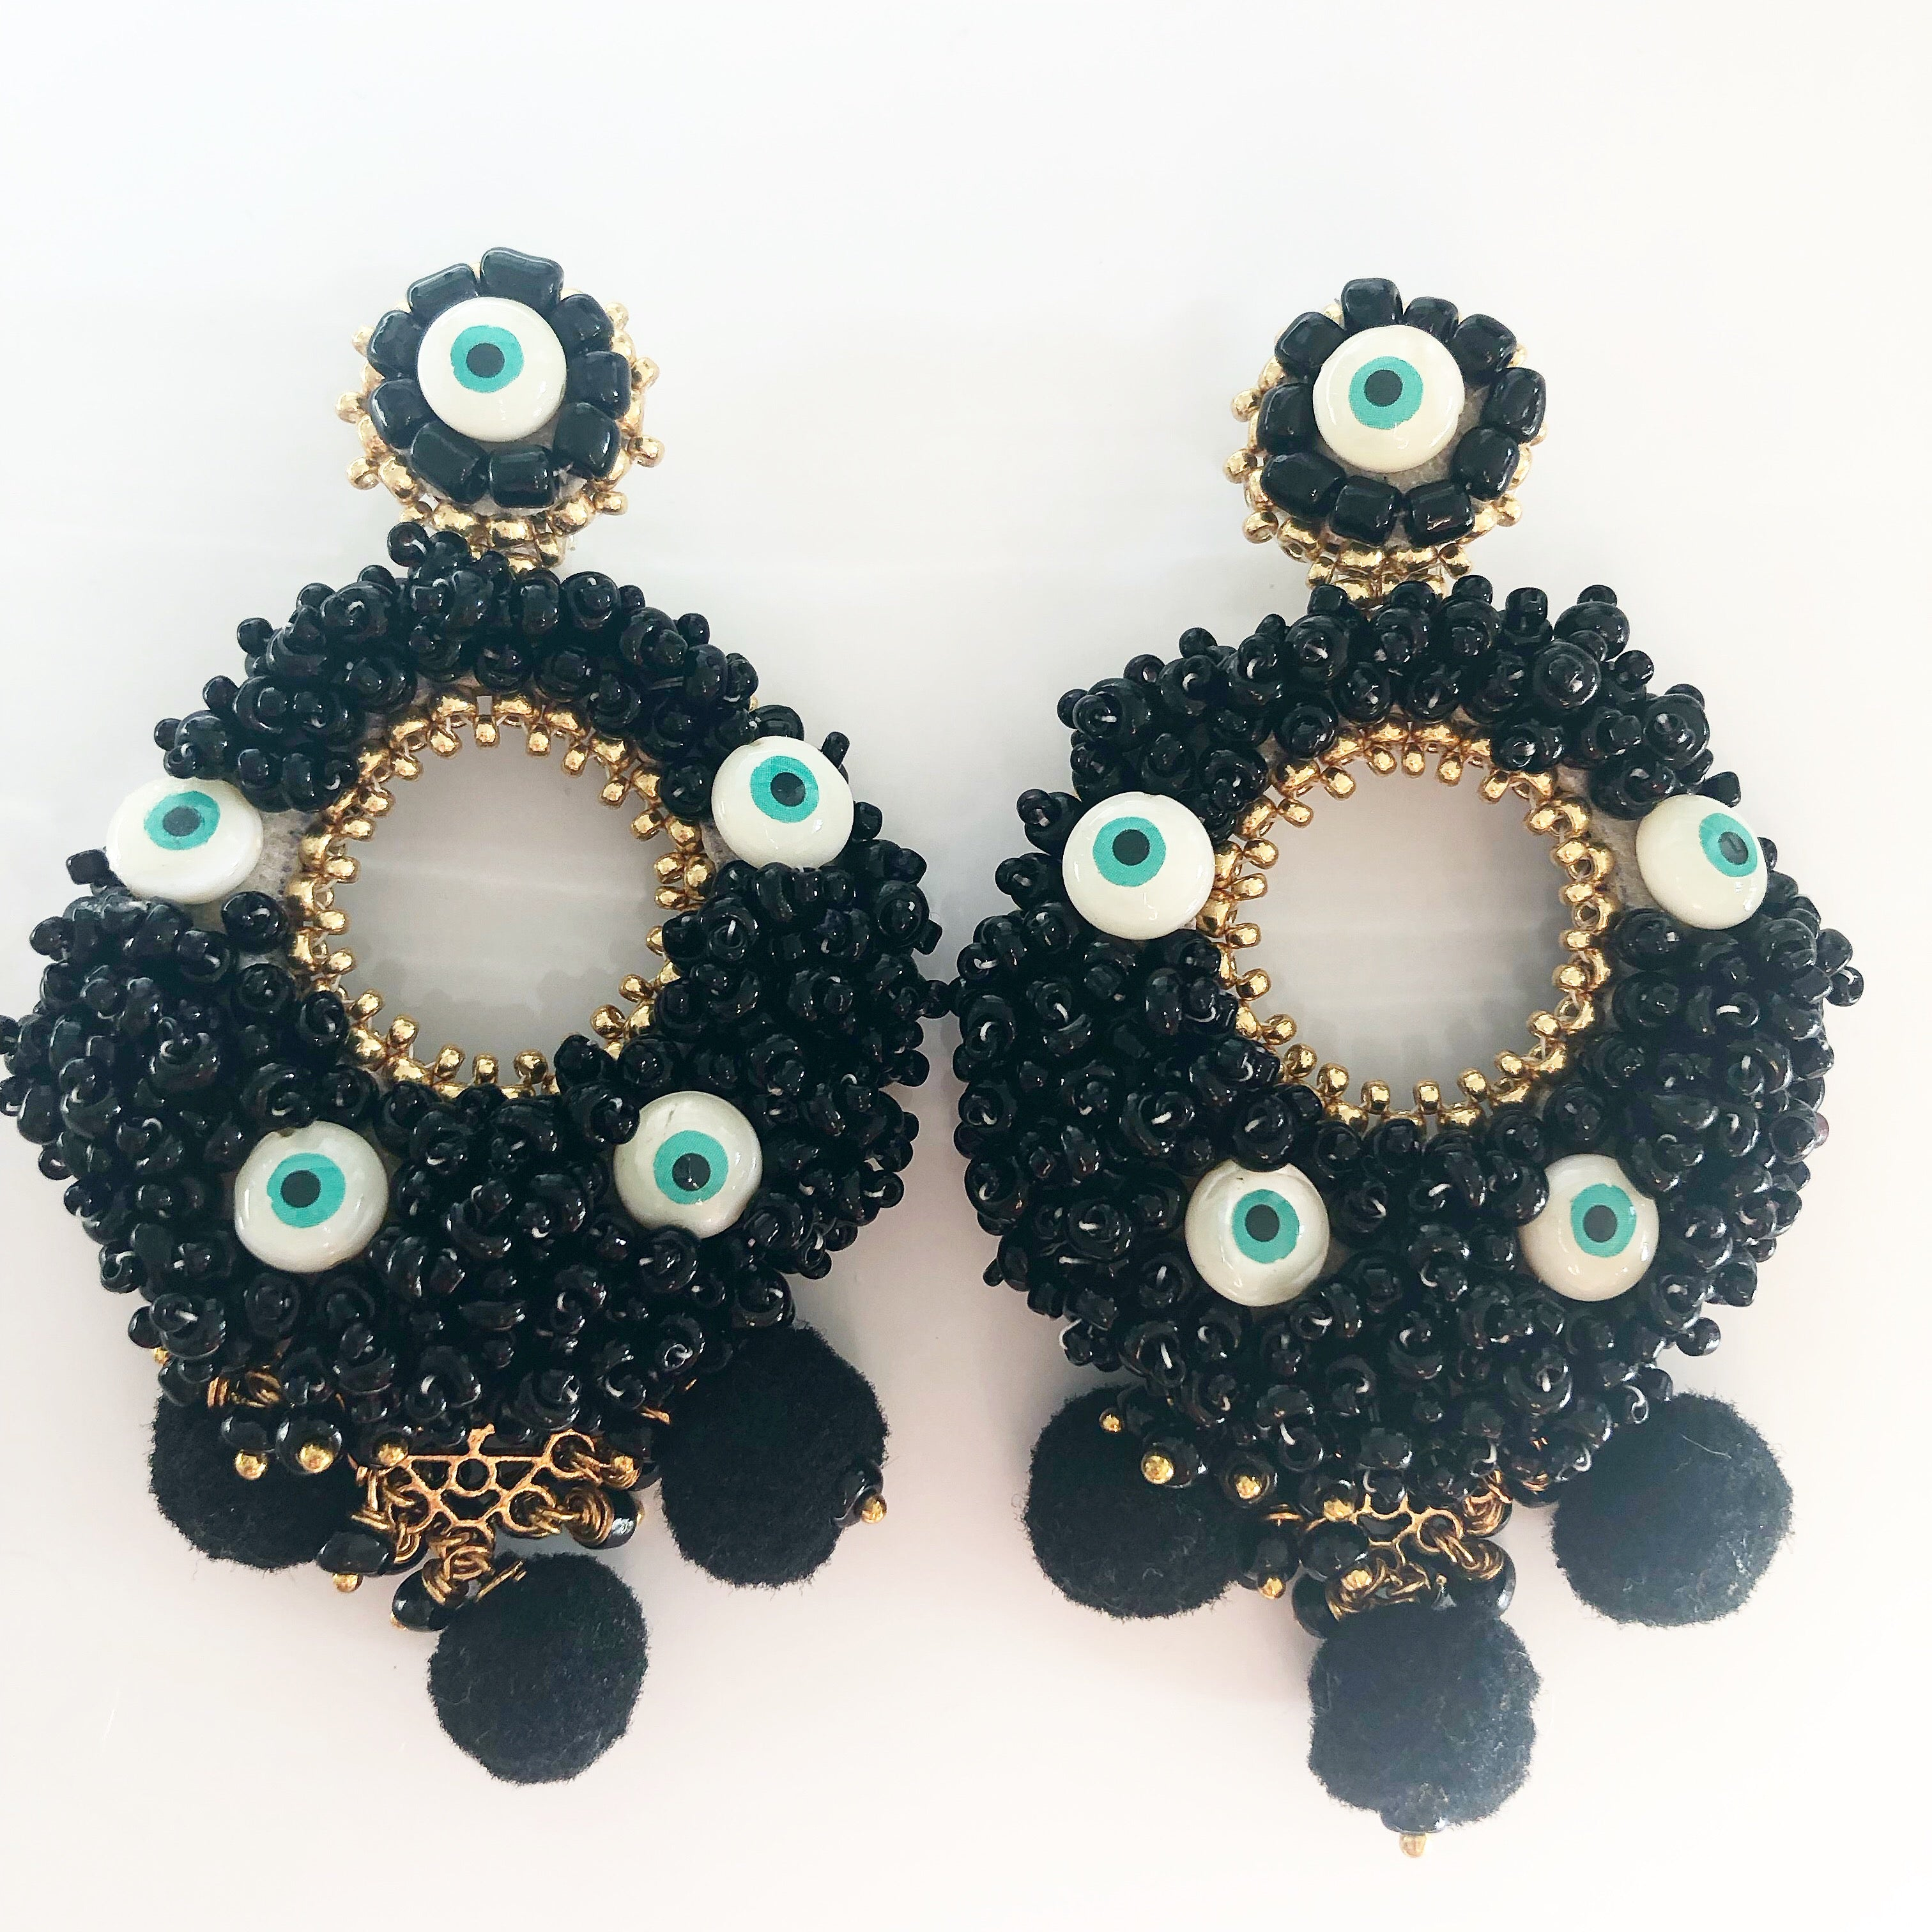 Handmade Statement Earrings - Alegra Evil Eyes